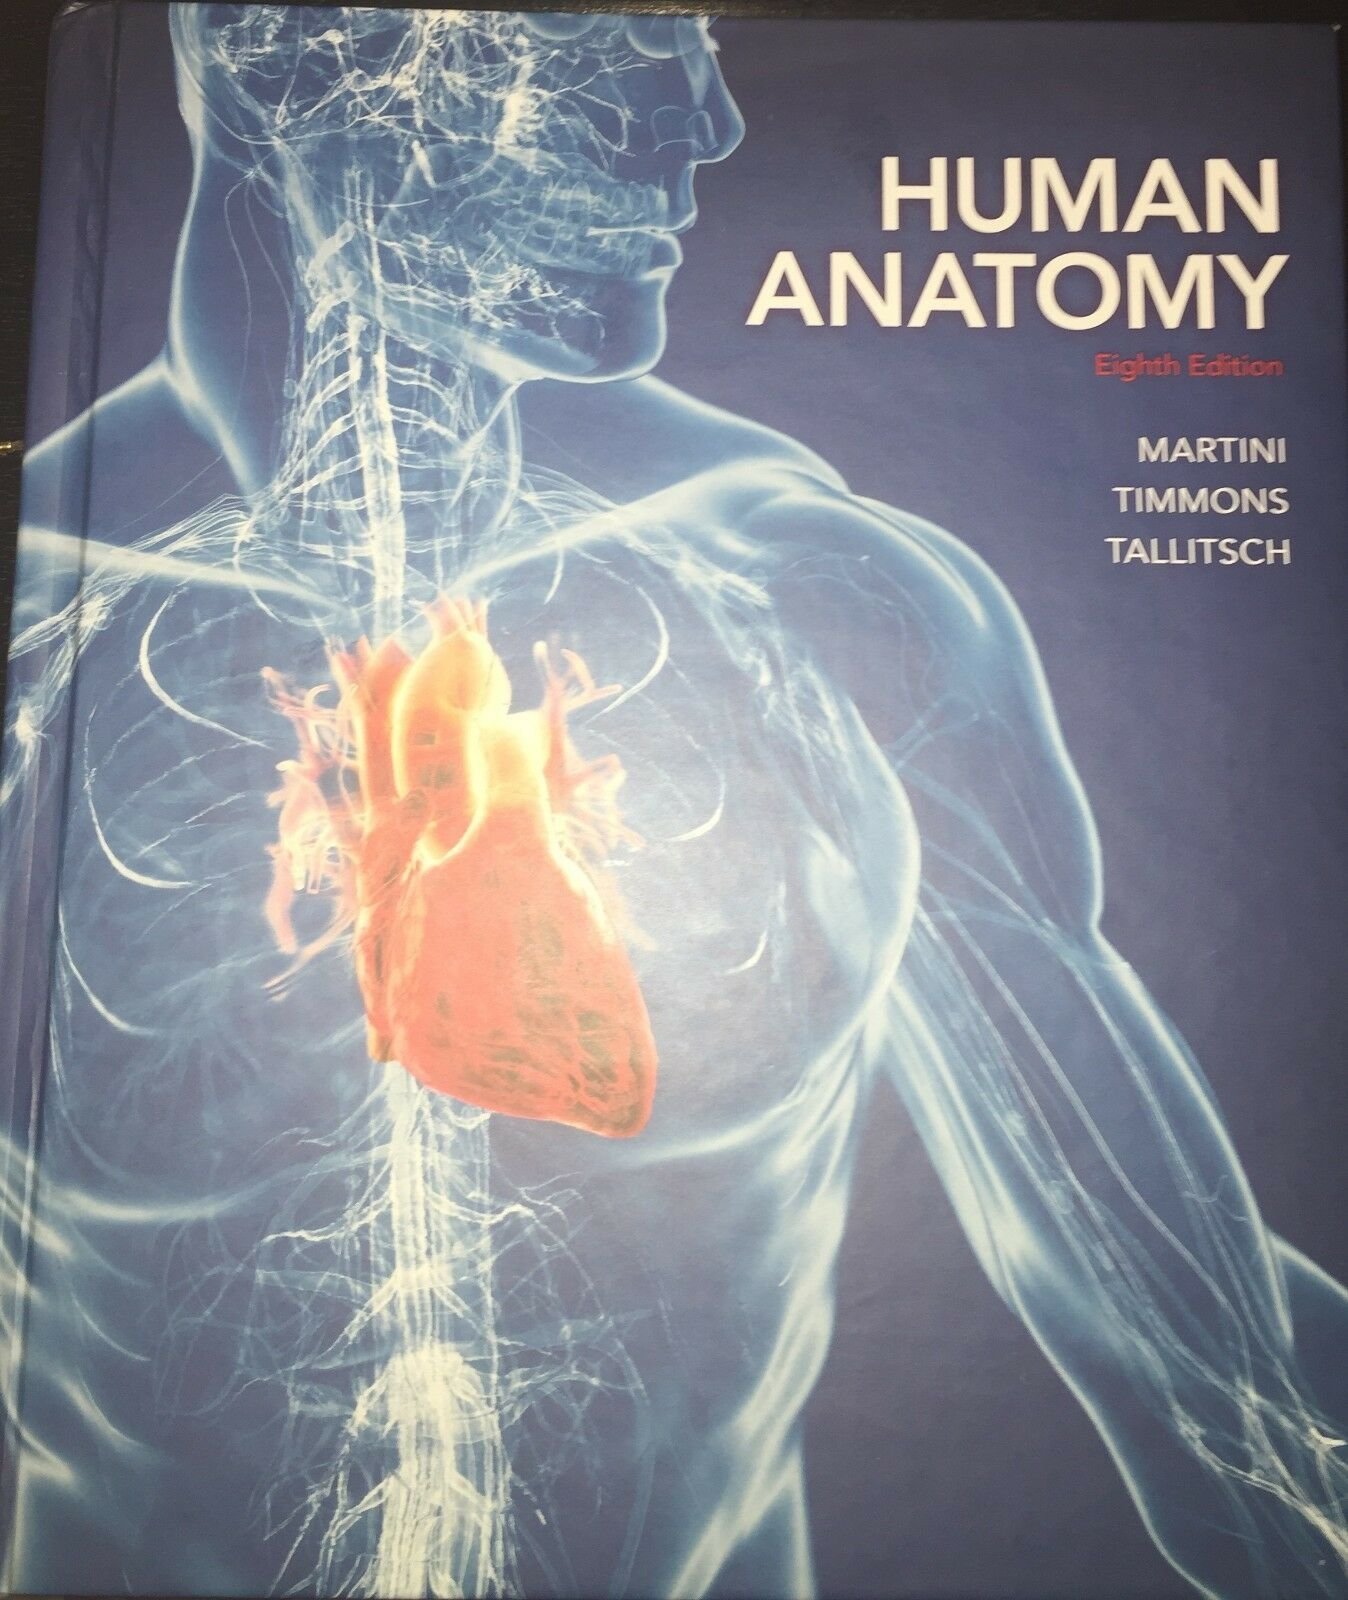 New Ap Titles By Ric Martini And Judi Nath Human Anatomy By